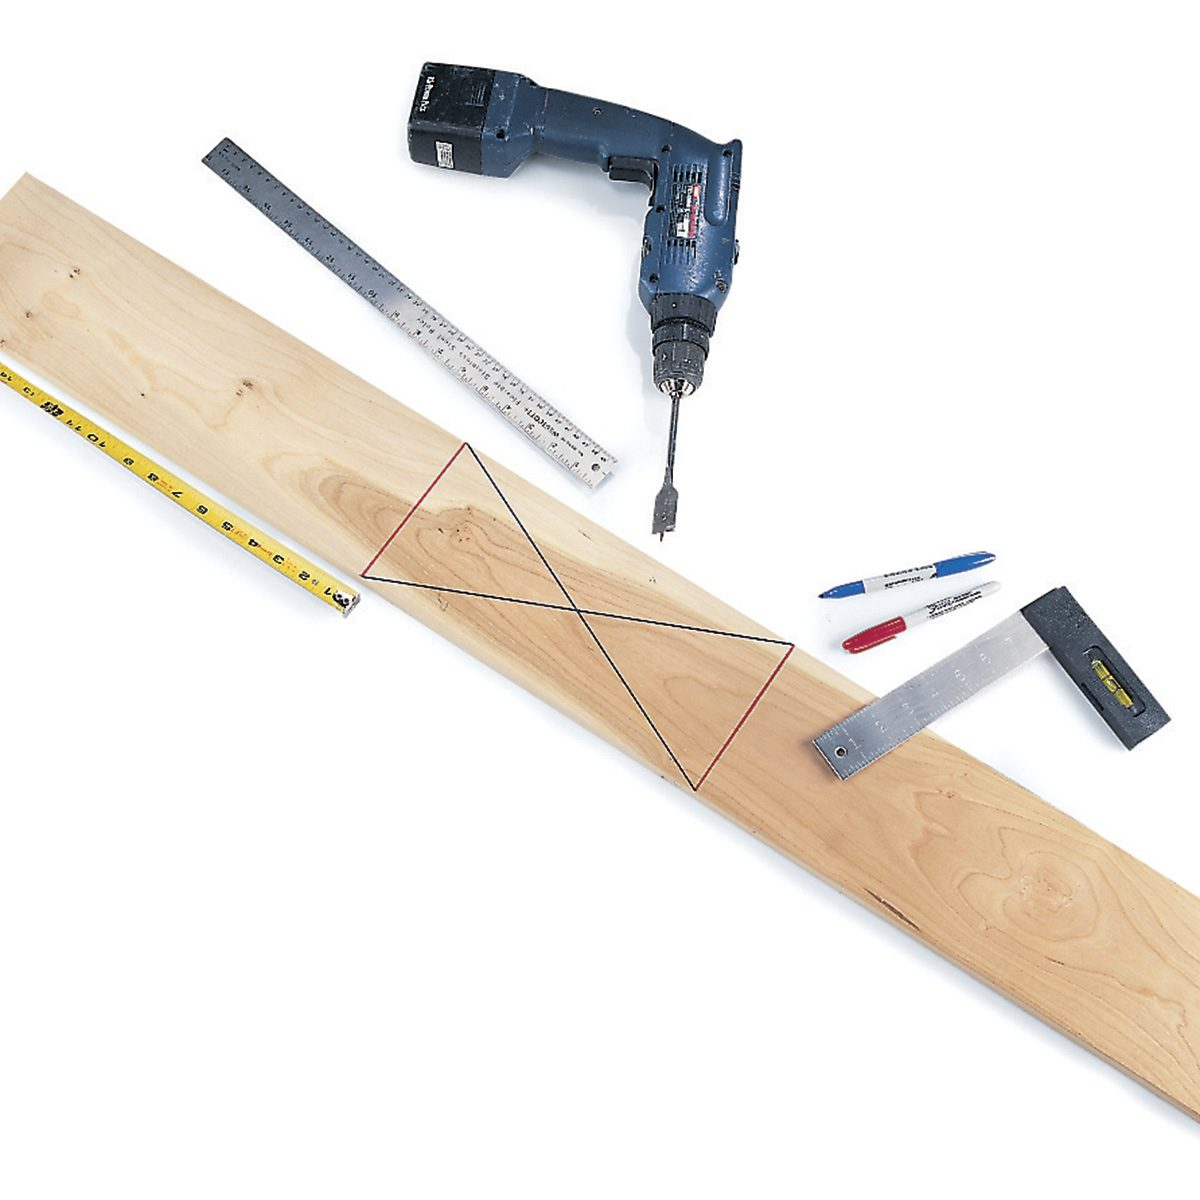 Find Board quick center-finding — workshop tips from the family handyman